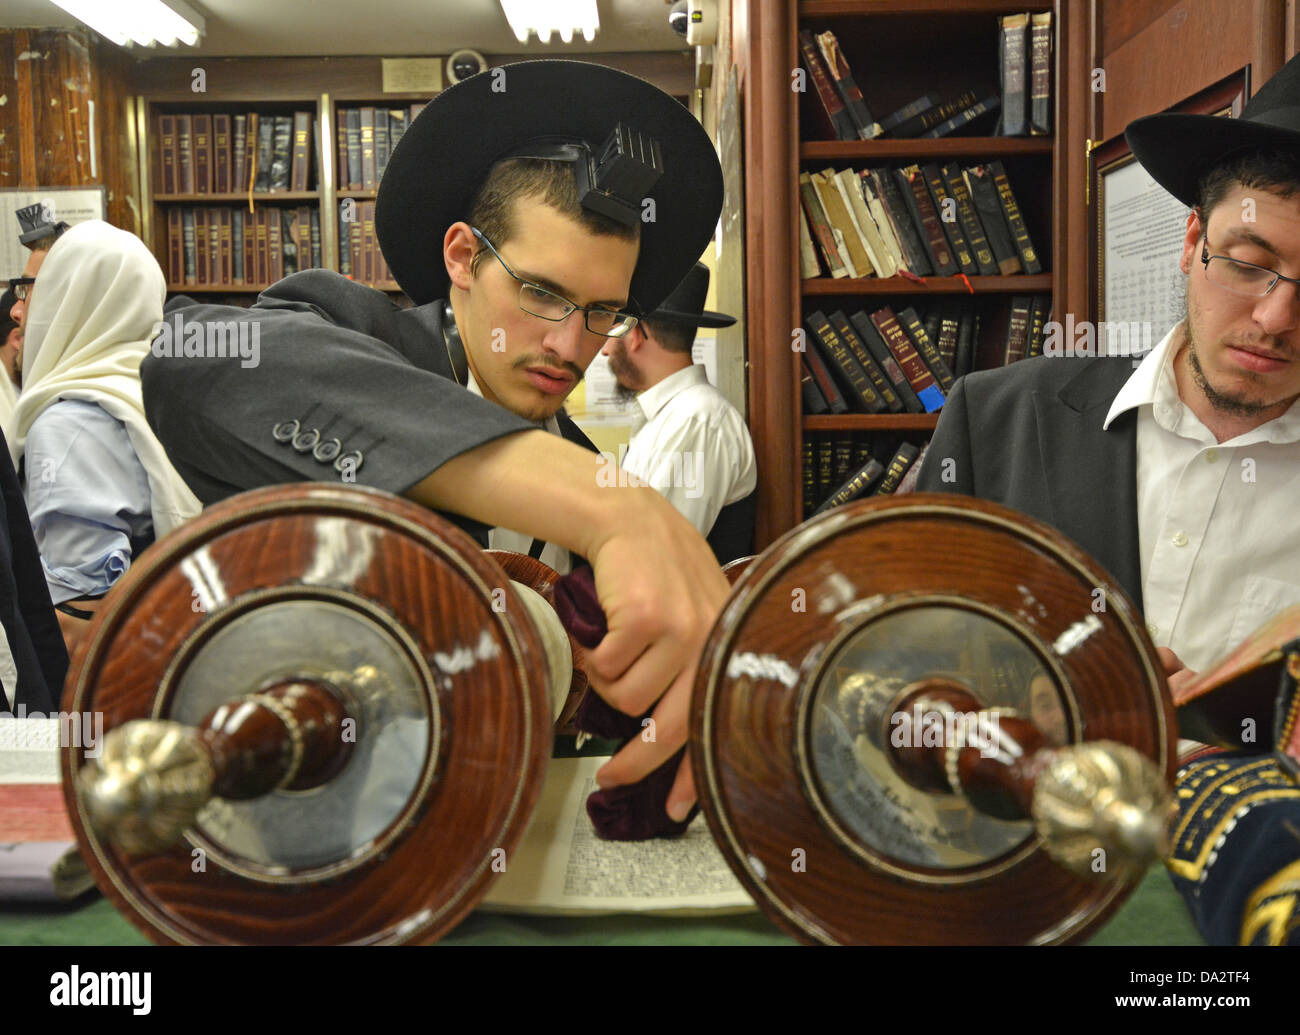 Religious Jewish man blesses the Torah before a reading at weekday services at Lubavitch headquarters in Brooklyn, - Stock Image